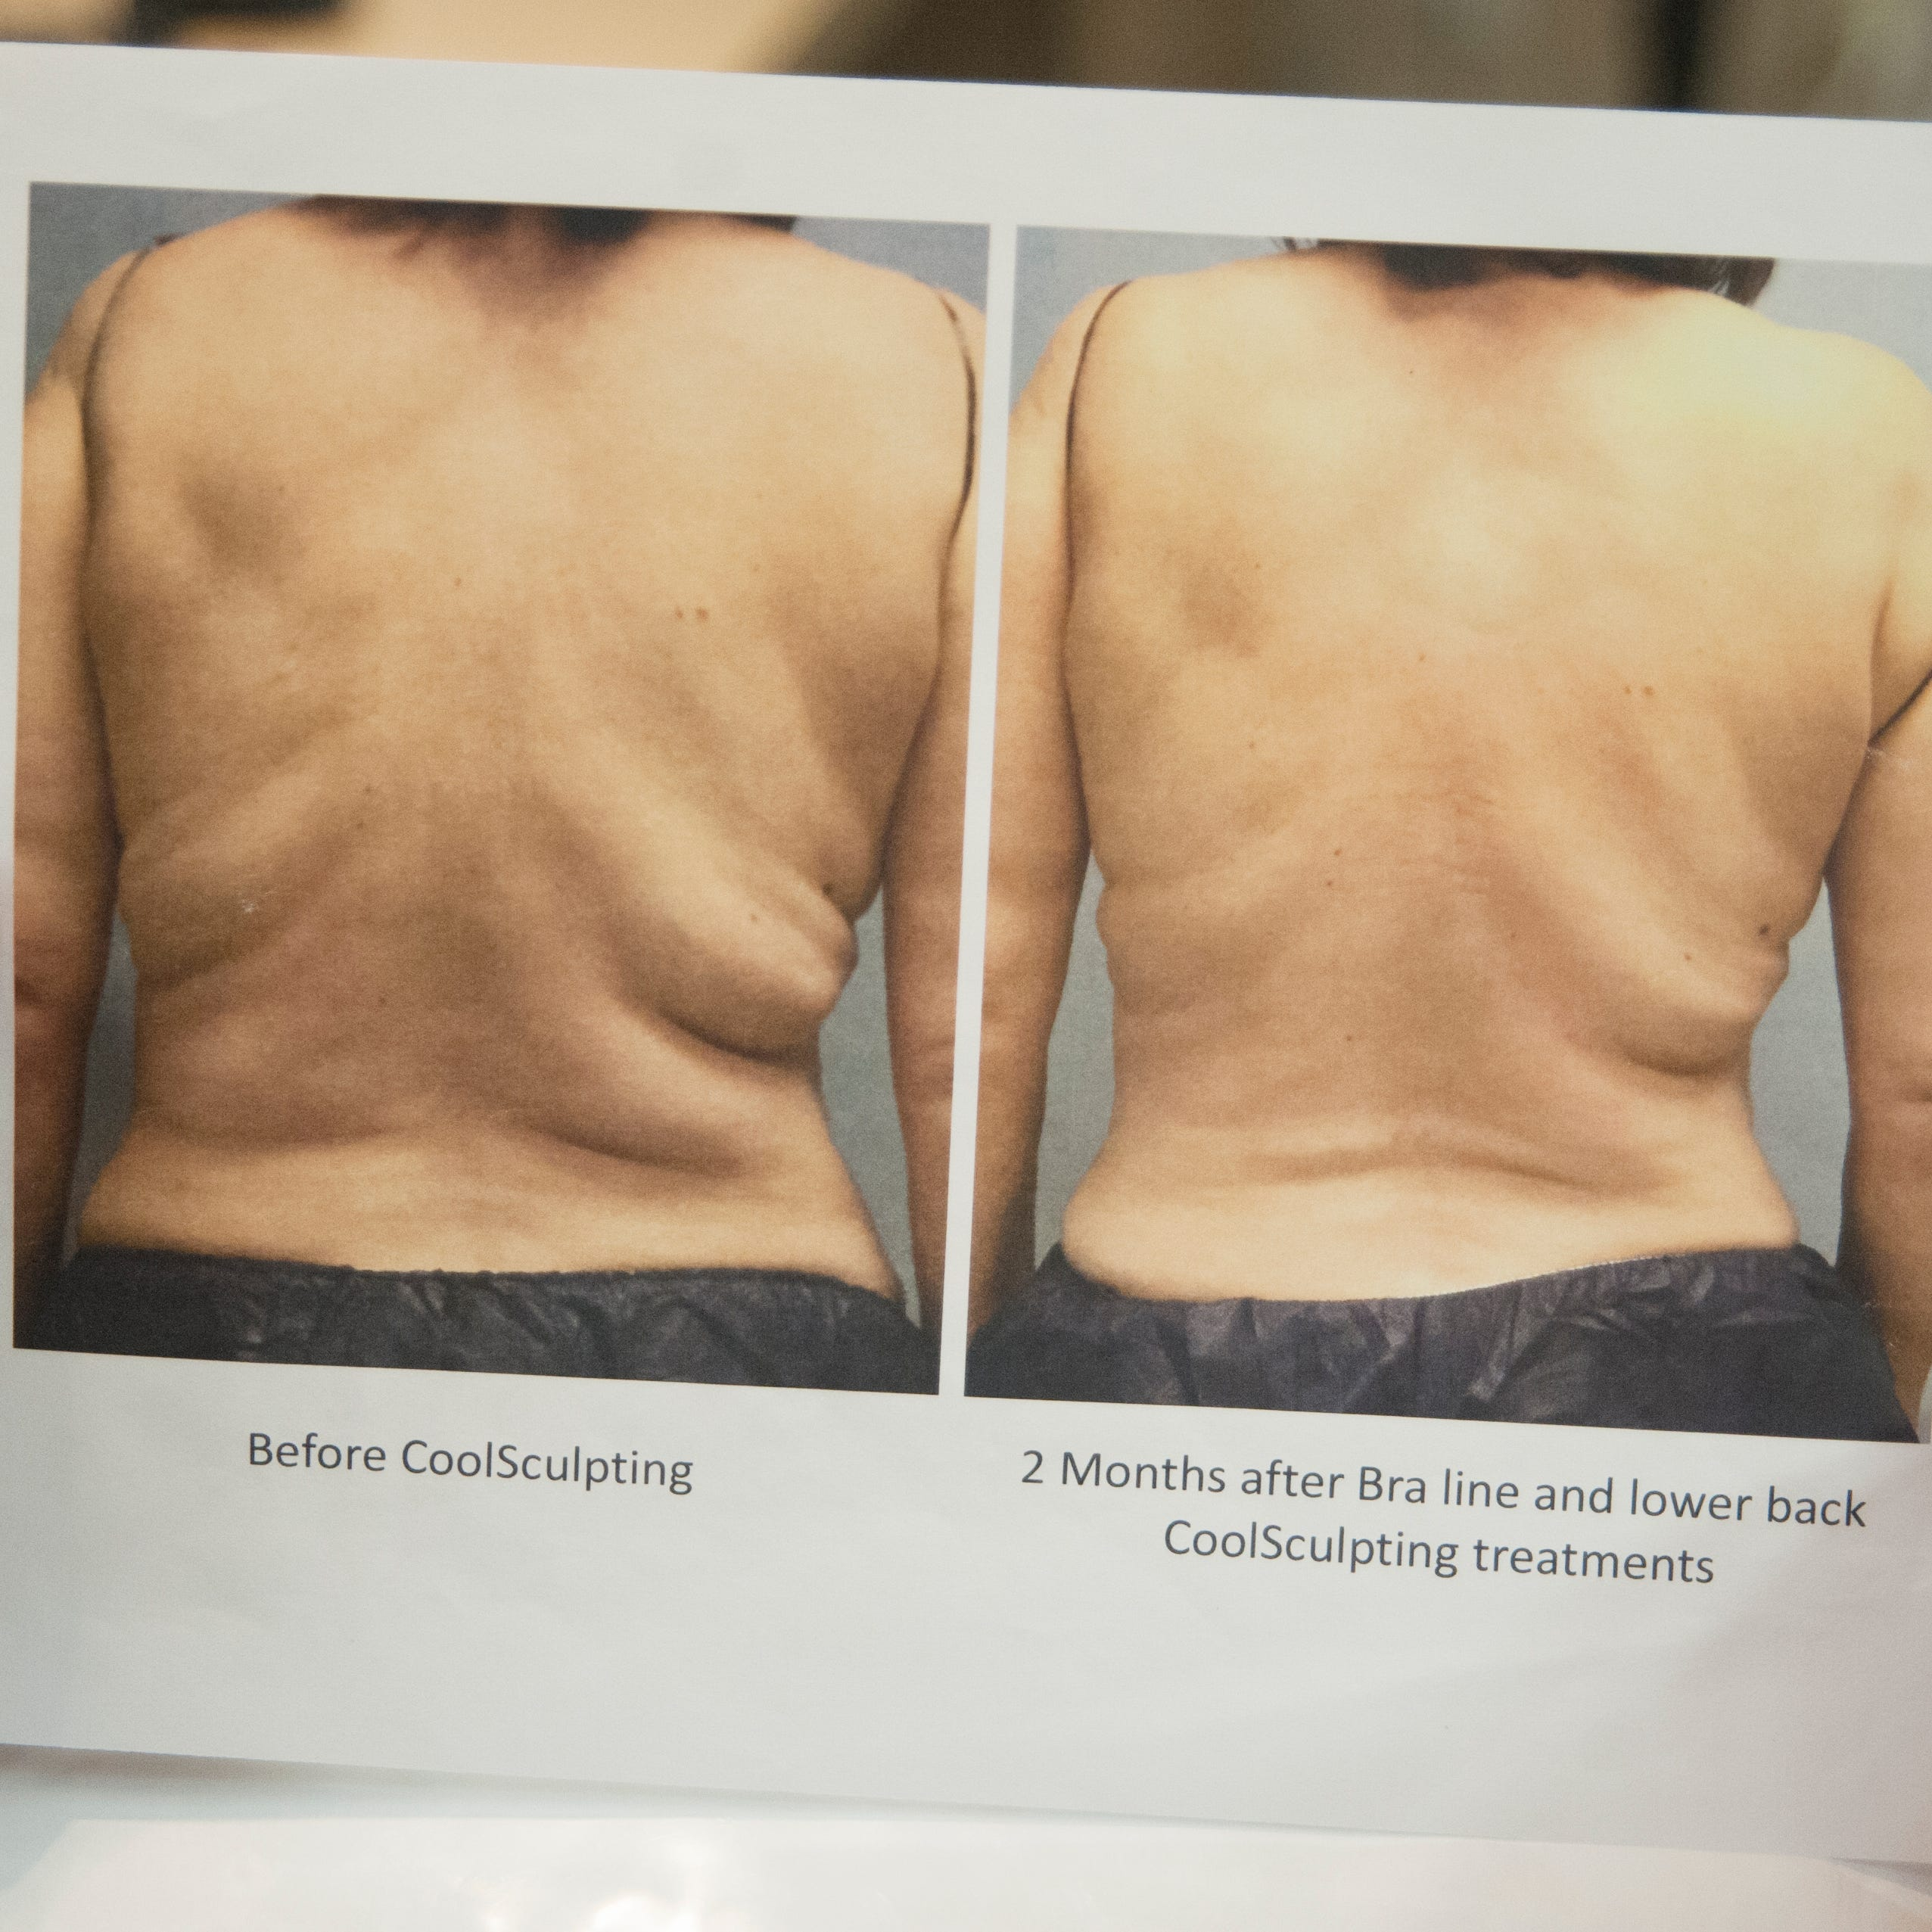 Freeze your fat? Cool Sculpting is gaining popularity